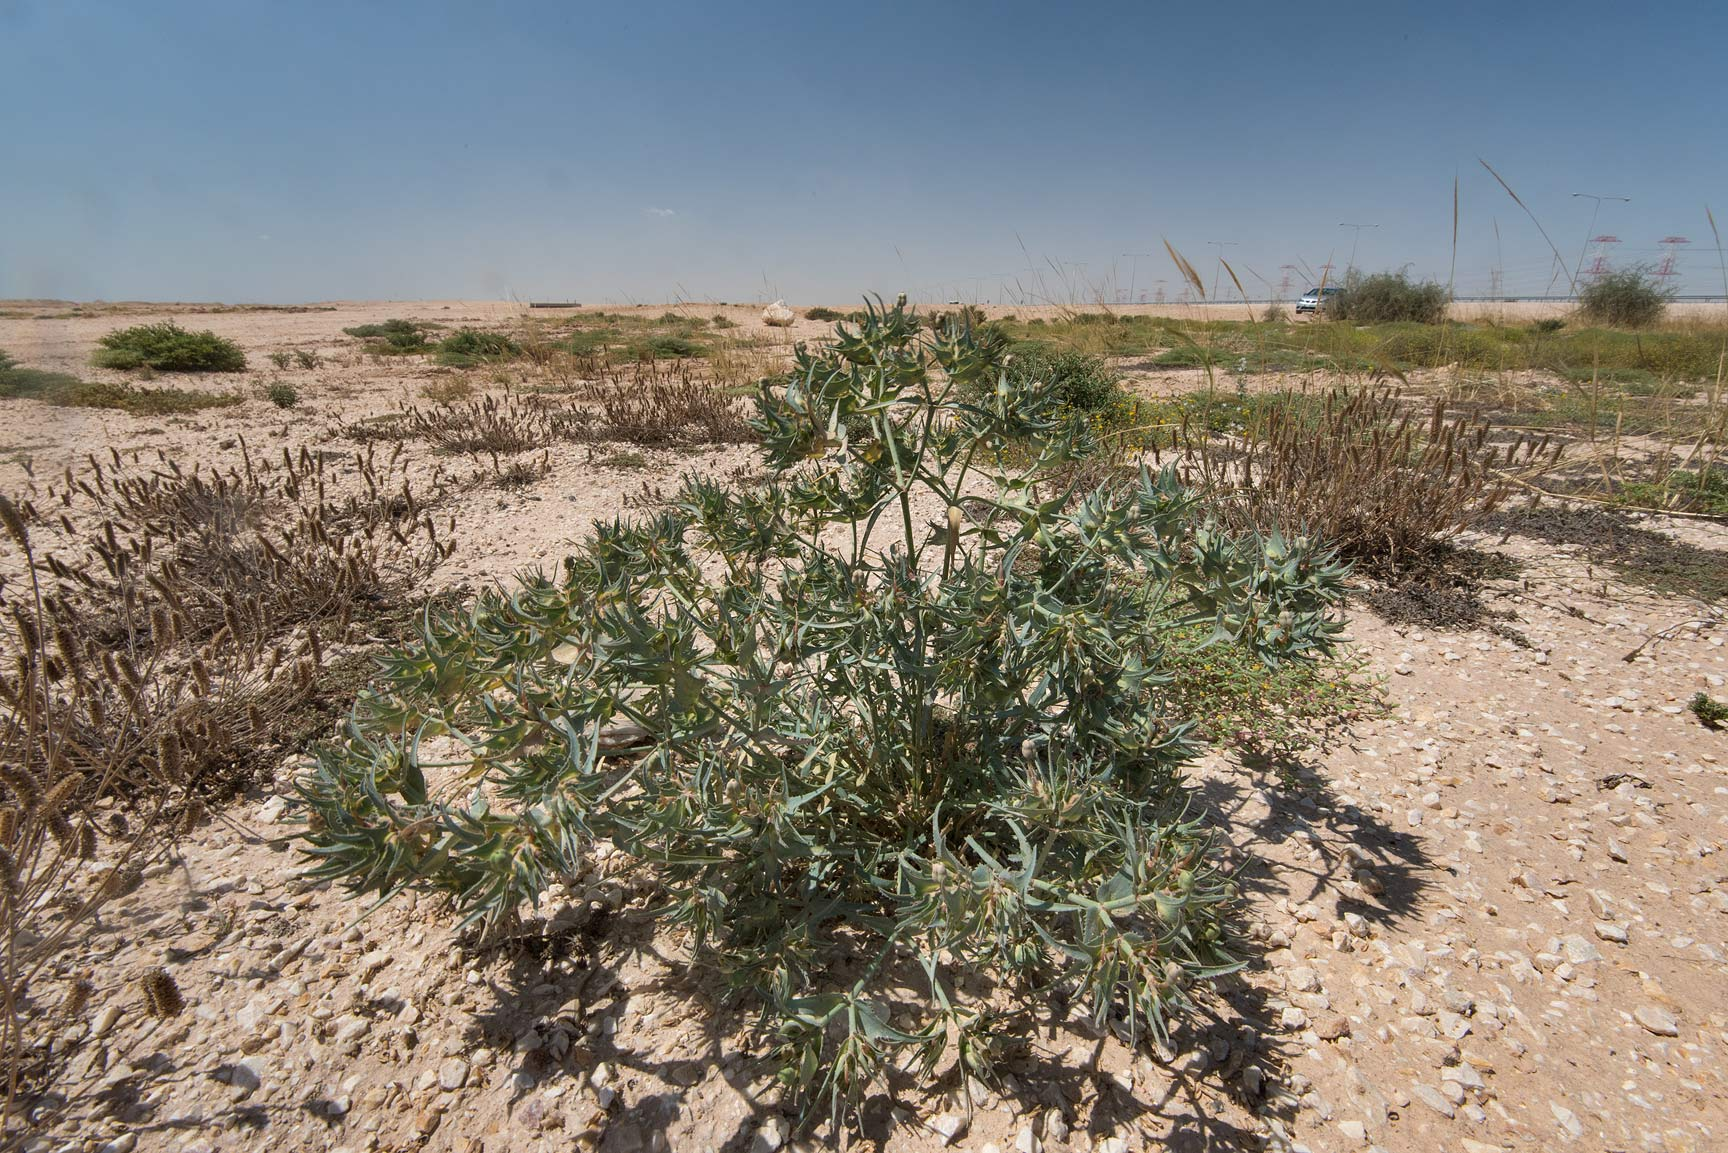 Spurge Euphorbia retusa with fruits in a roadside...near Route 77 to Ras Laffan. Qatar